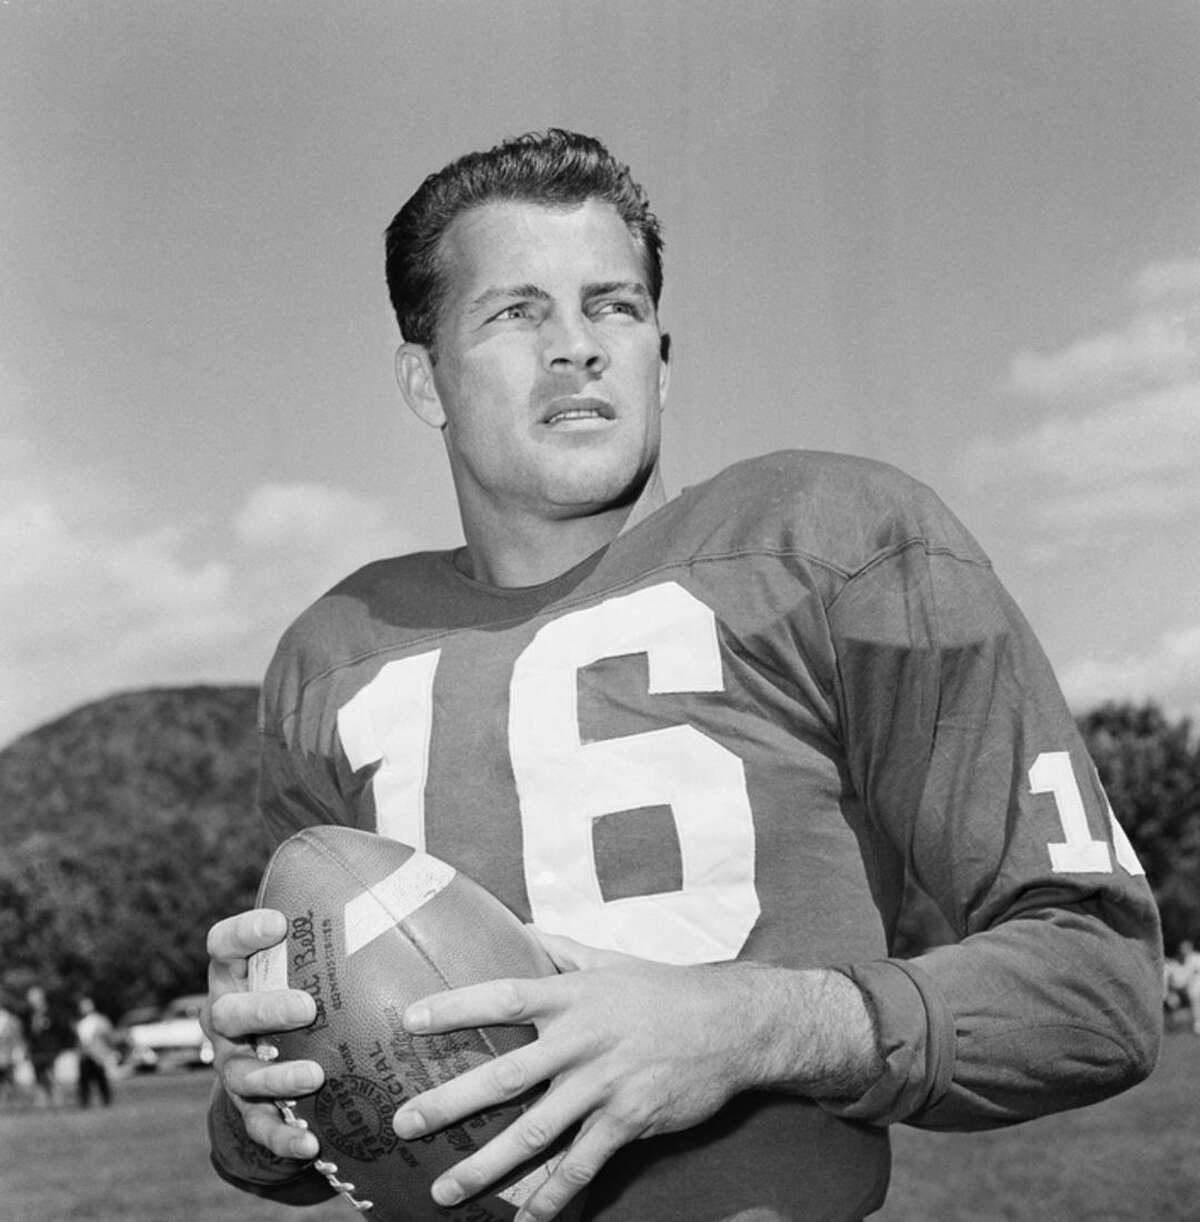 FILE - In this Sept. 9, 1958 file photo, New York Giants halfback Frank Gifford participates in a workout in New York. In a statement released by NBC News on Sunday, Aug. 9, 2015, his family said Gifford died suddenly at his Connecticut home of natural causes that morning. (AP Photo/John Rooney, File)